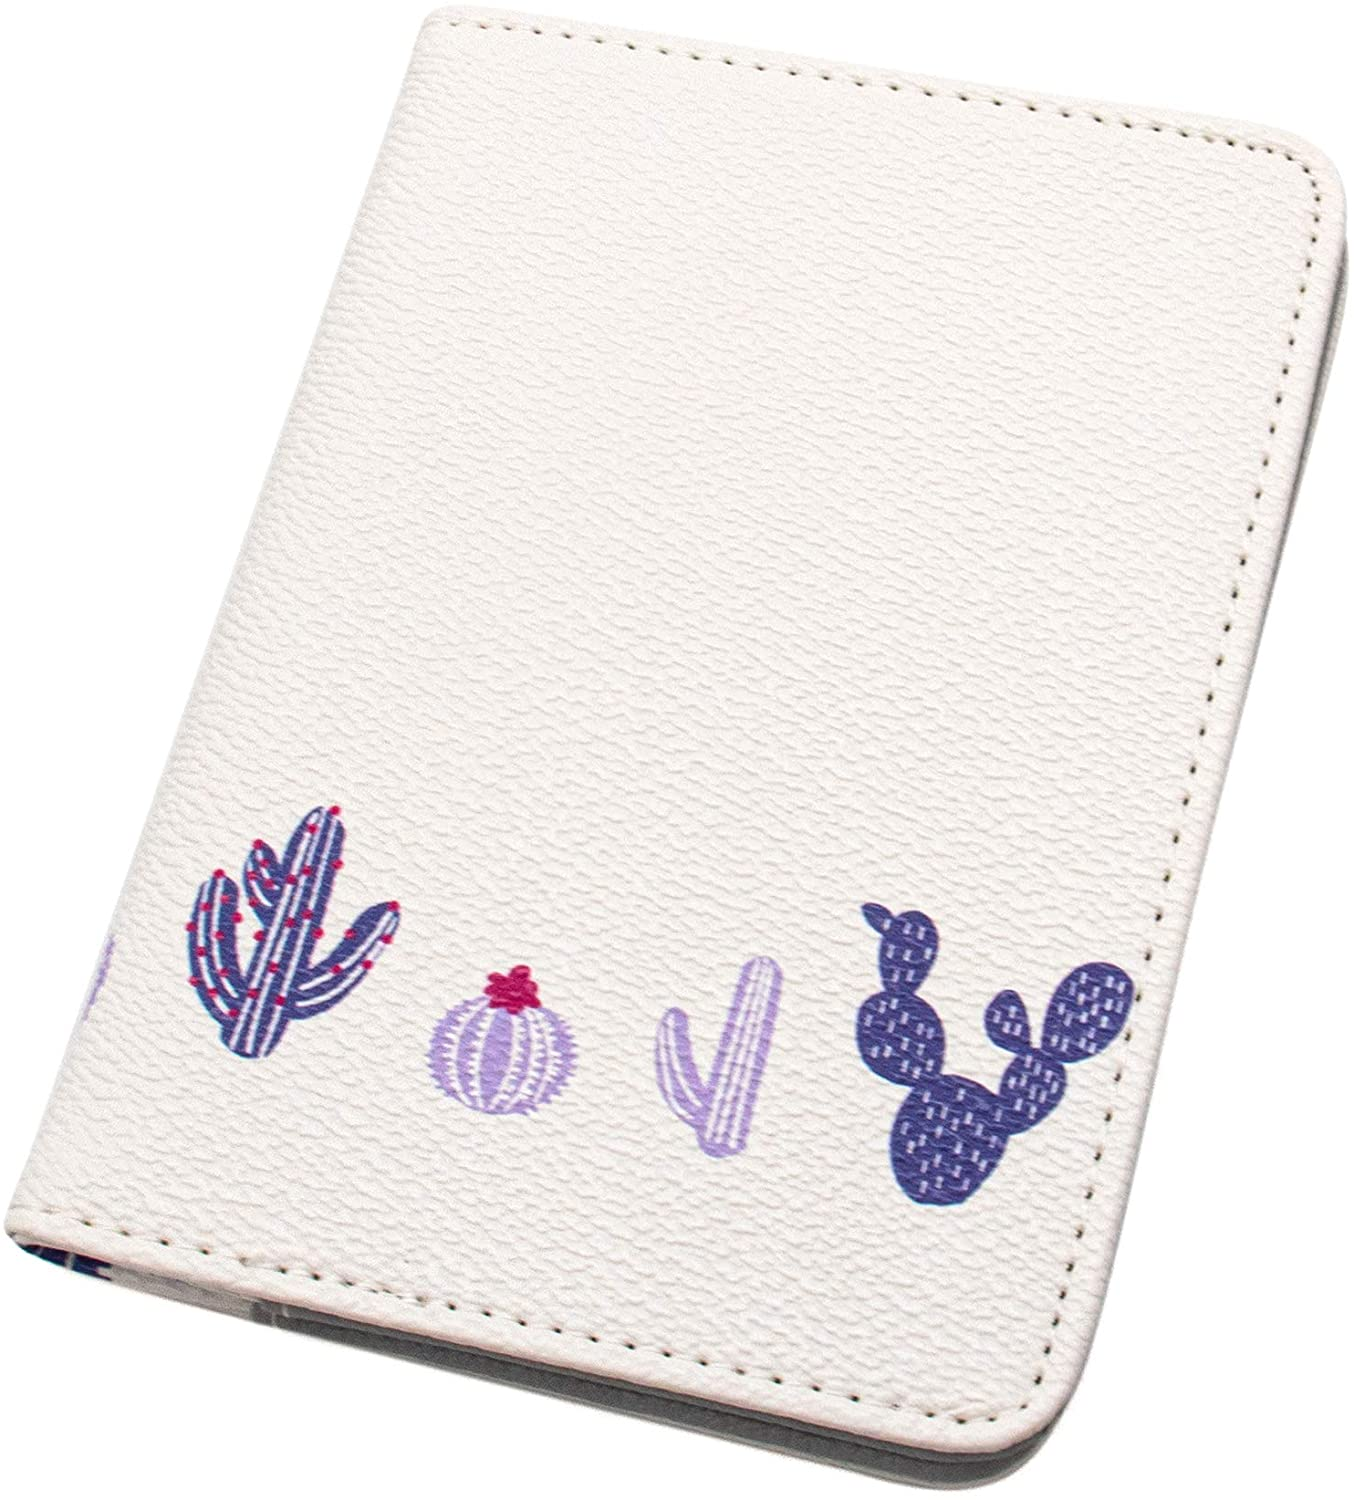 AUEAR, Passport Holder Cover Passport Cover Protector Multifunctional Pu Leather Folder Cactus Pattern Travel Wallet for Credit Cards Tickets and Boarding Pass